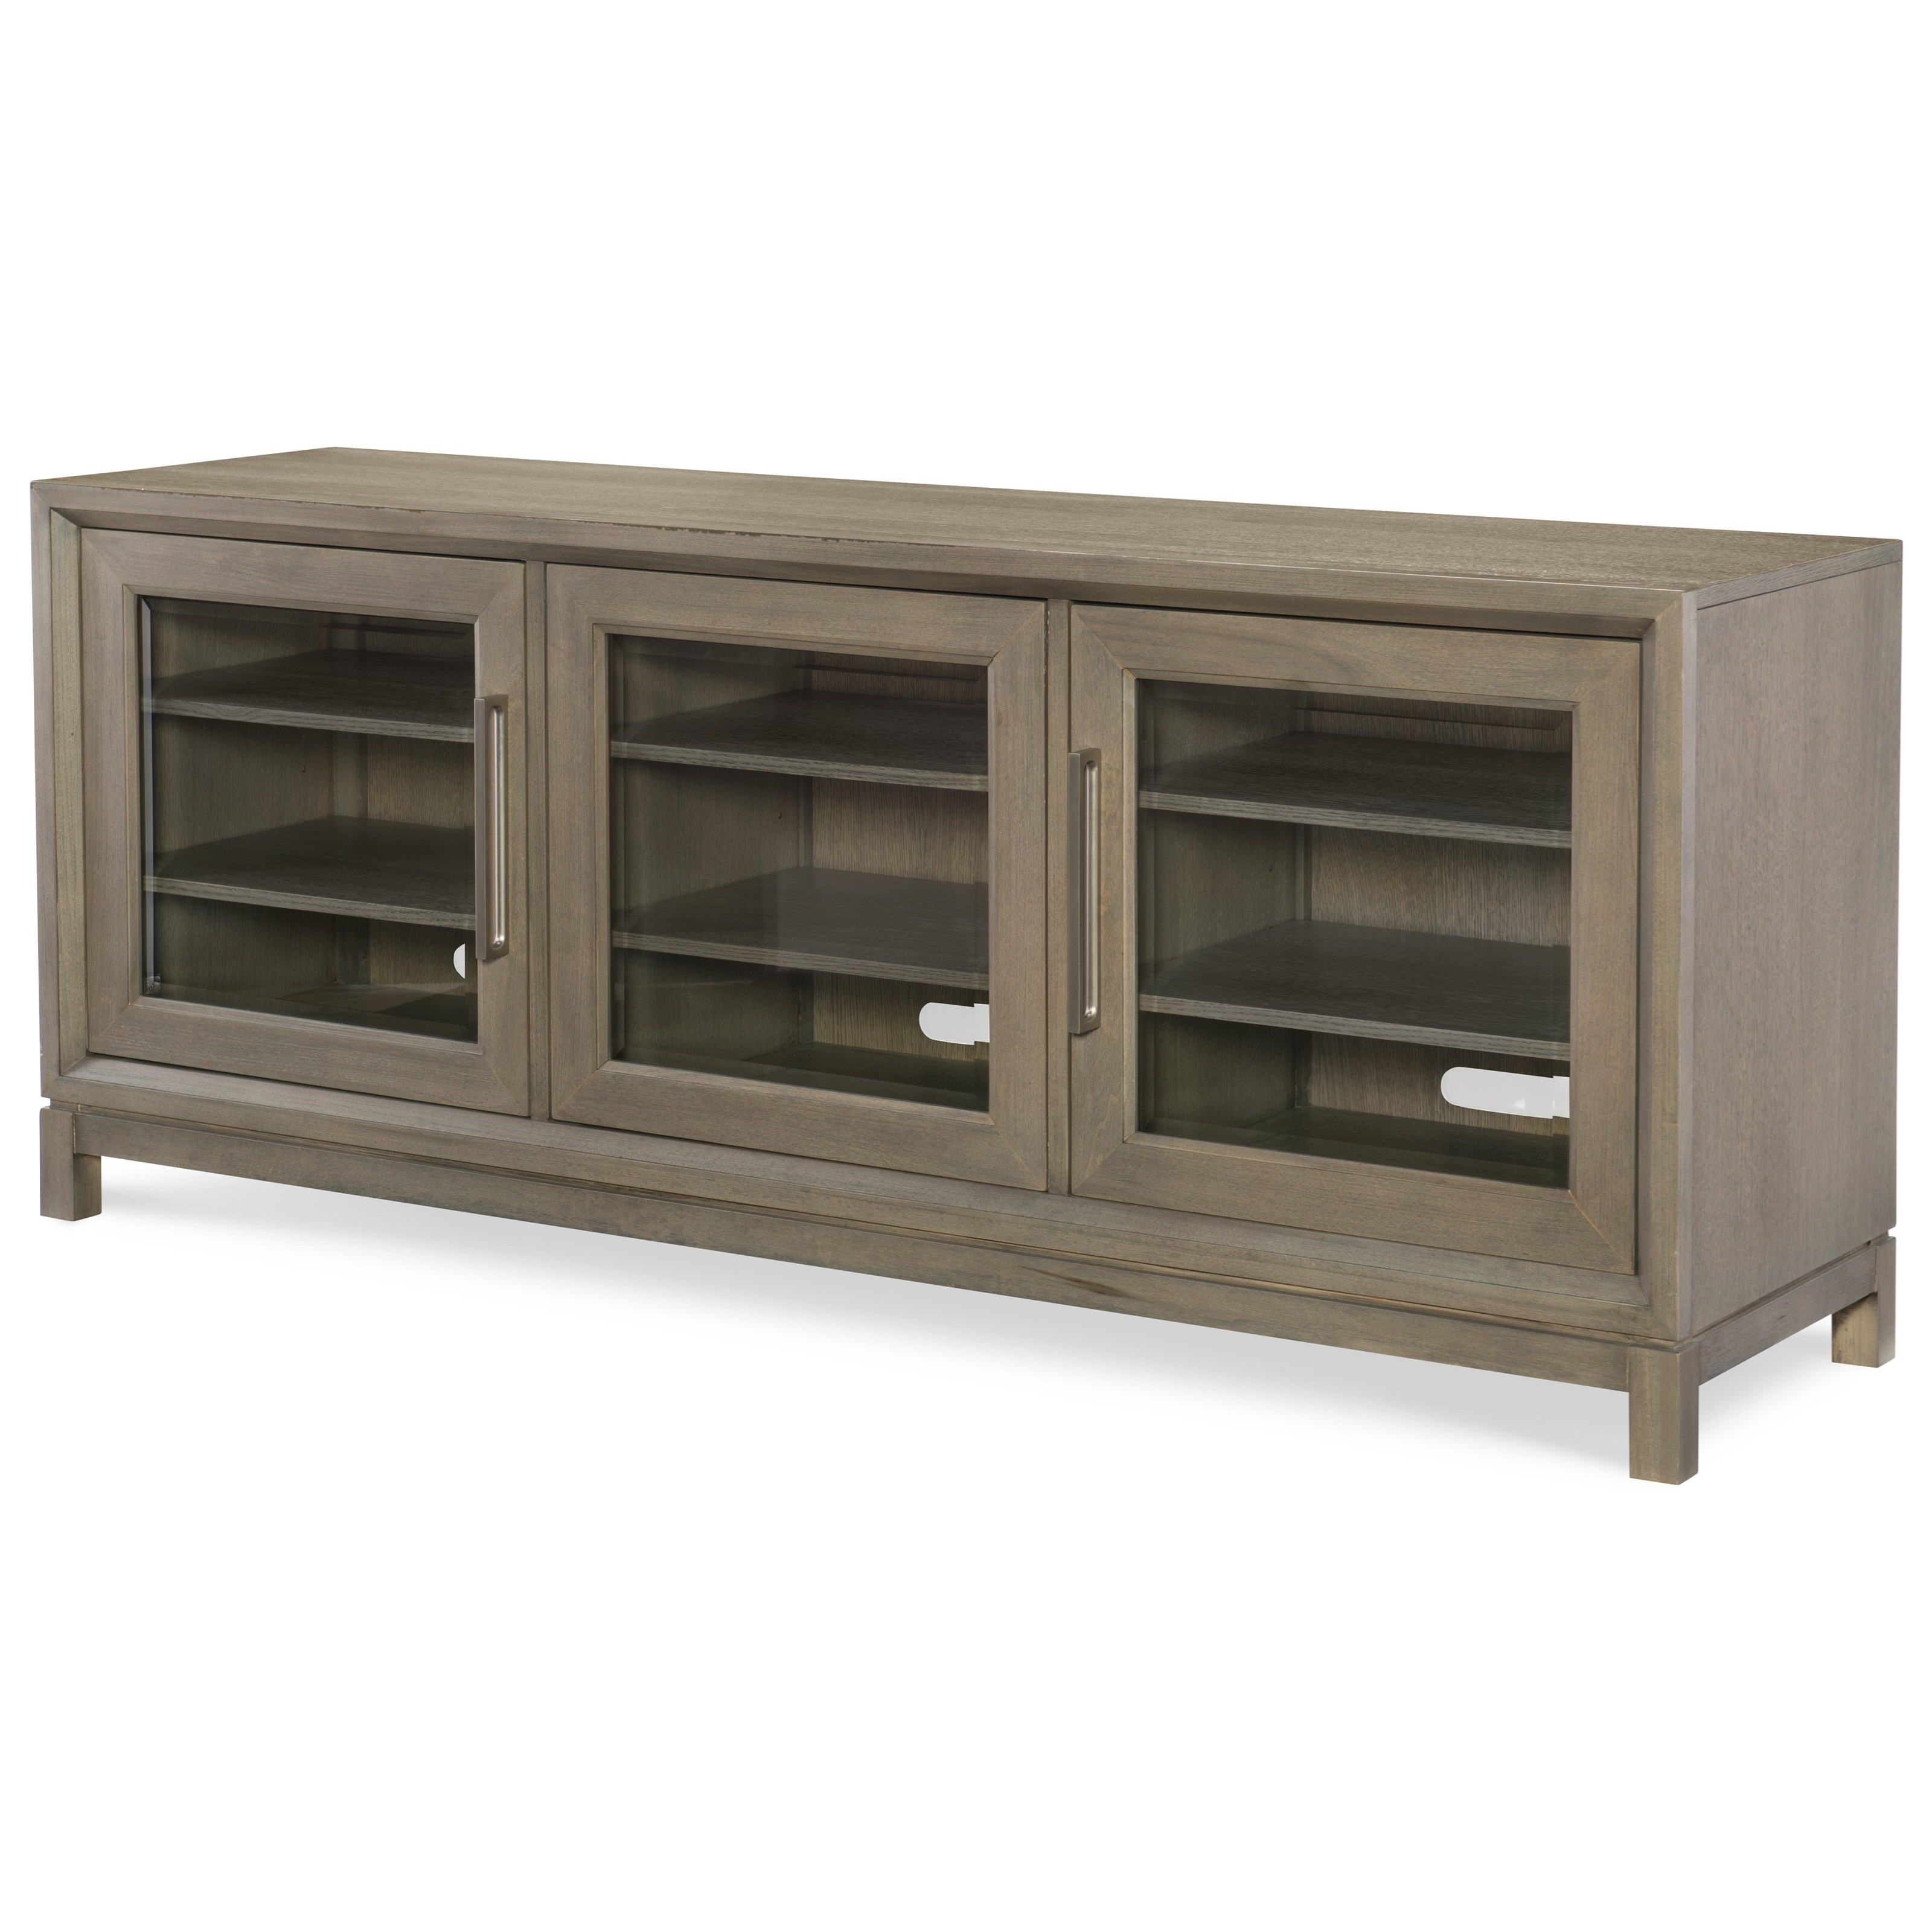 Rachael Ray Home Highline Entertainment Console - Item Number: 6000-023